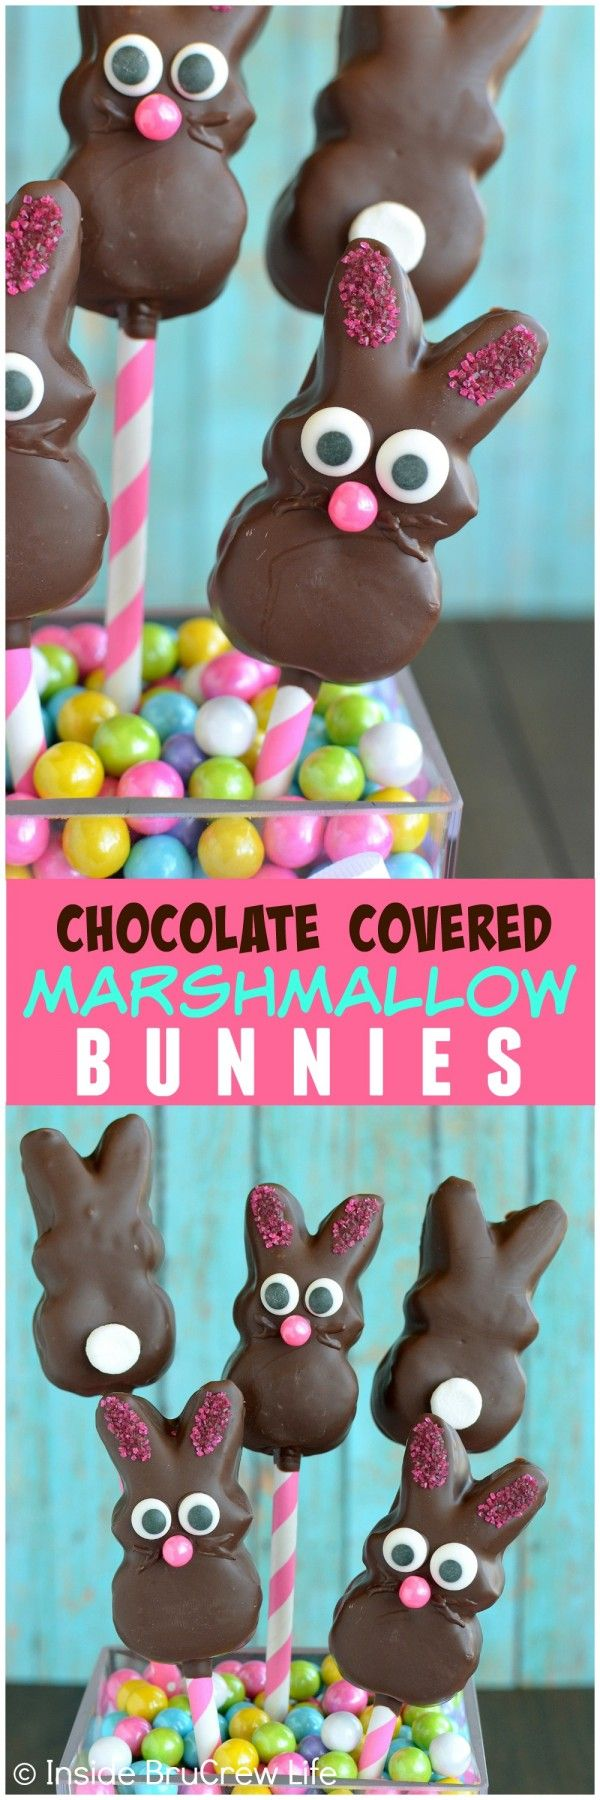 Chocolate Covered Marshmallow Bunnies - these easy no bake bunnies make a fun and edible Easter centerpiece